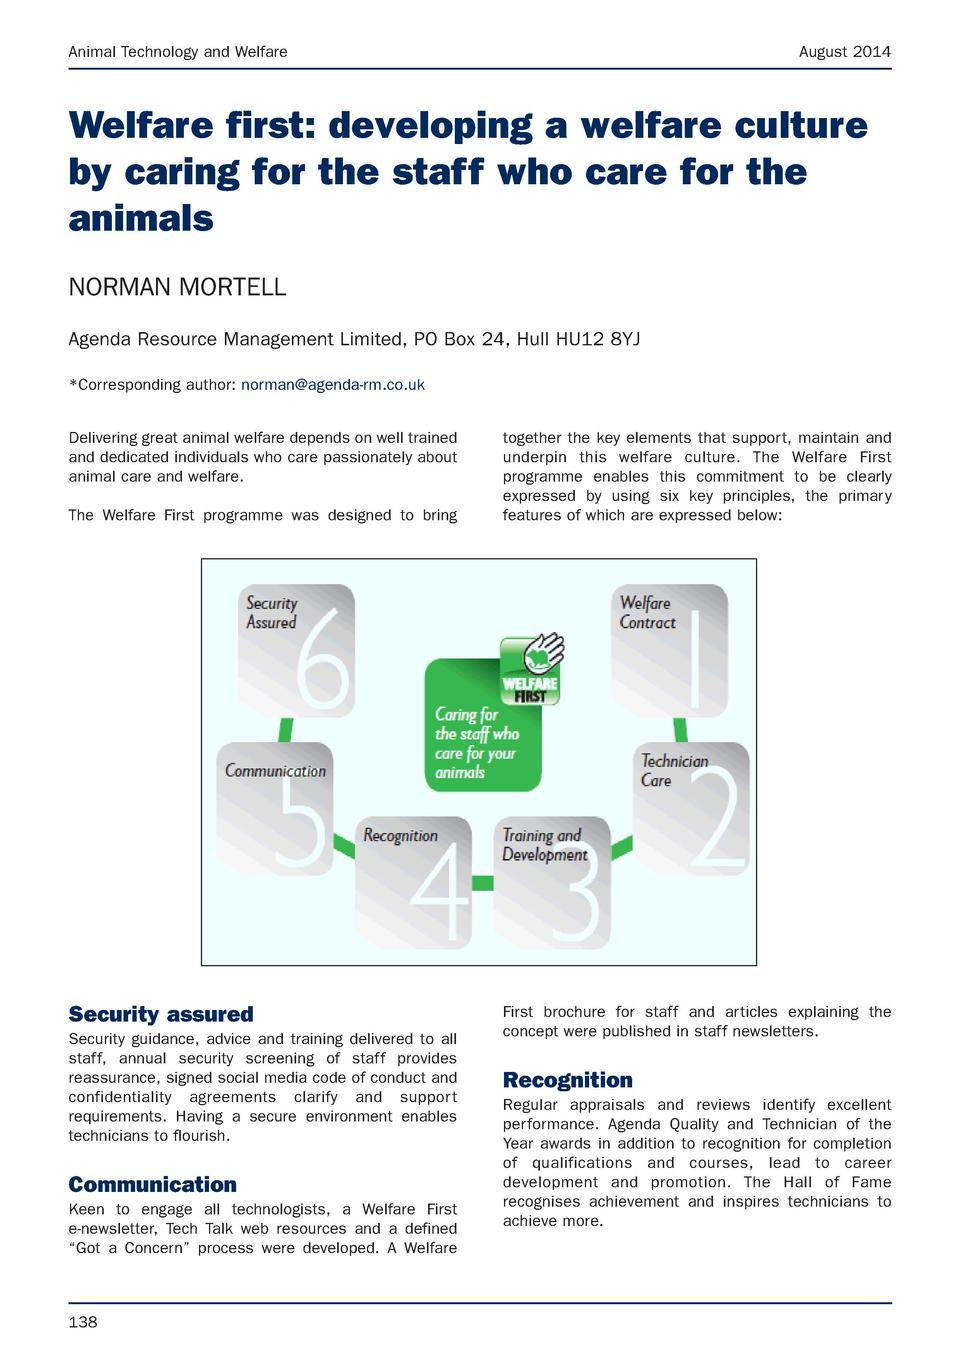 Animal Technology and Welfare  August 2014  Welfare first  developing a welfare culture by caring for the staff who care f...